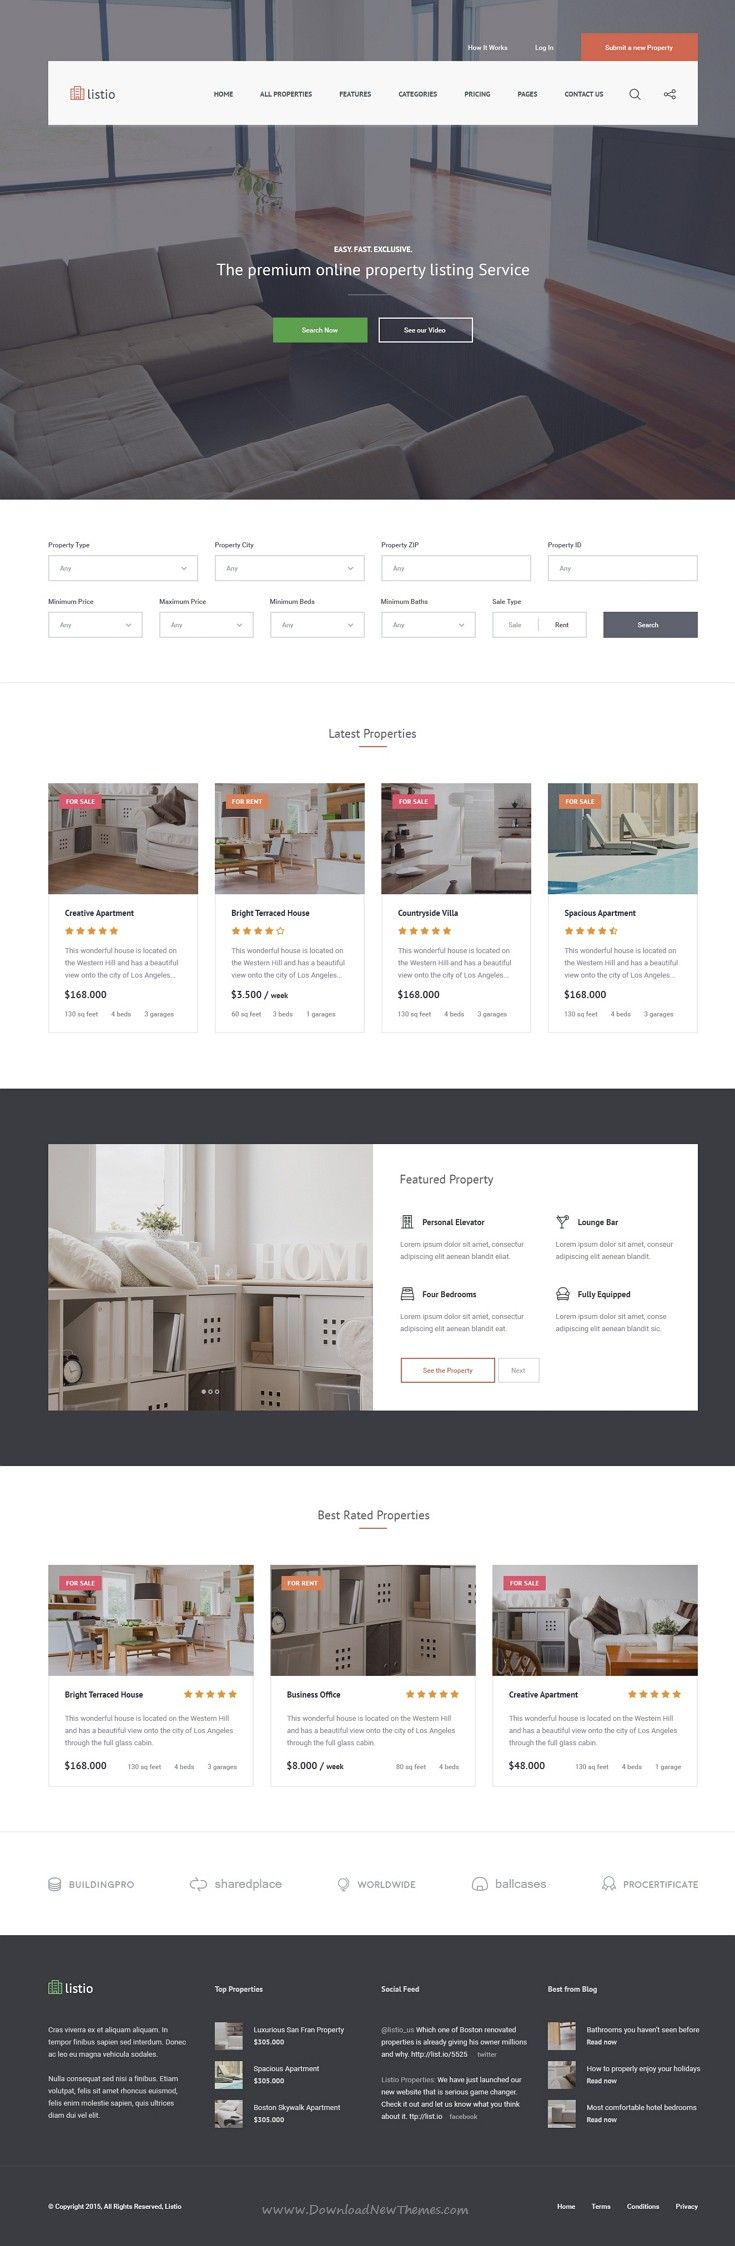 Real Estate Template%0A Listio is a perfect  PSD Template for real estate businesses excellent   website